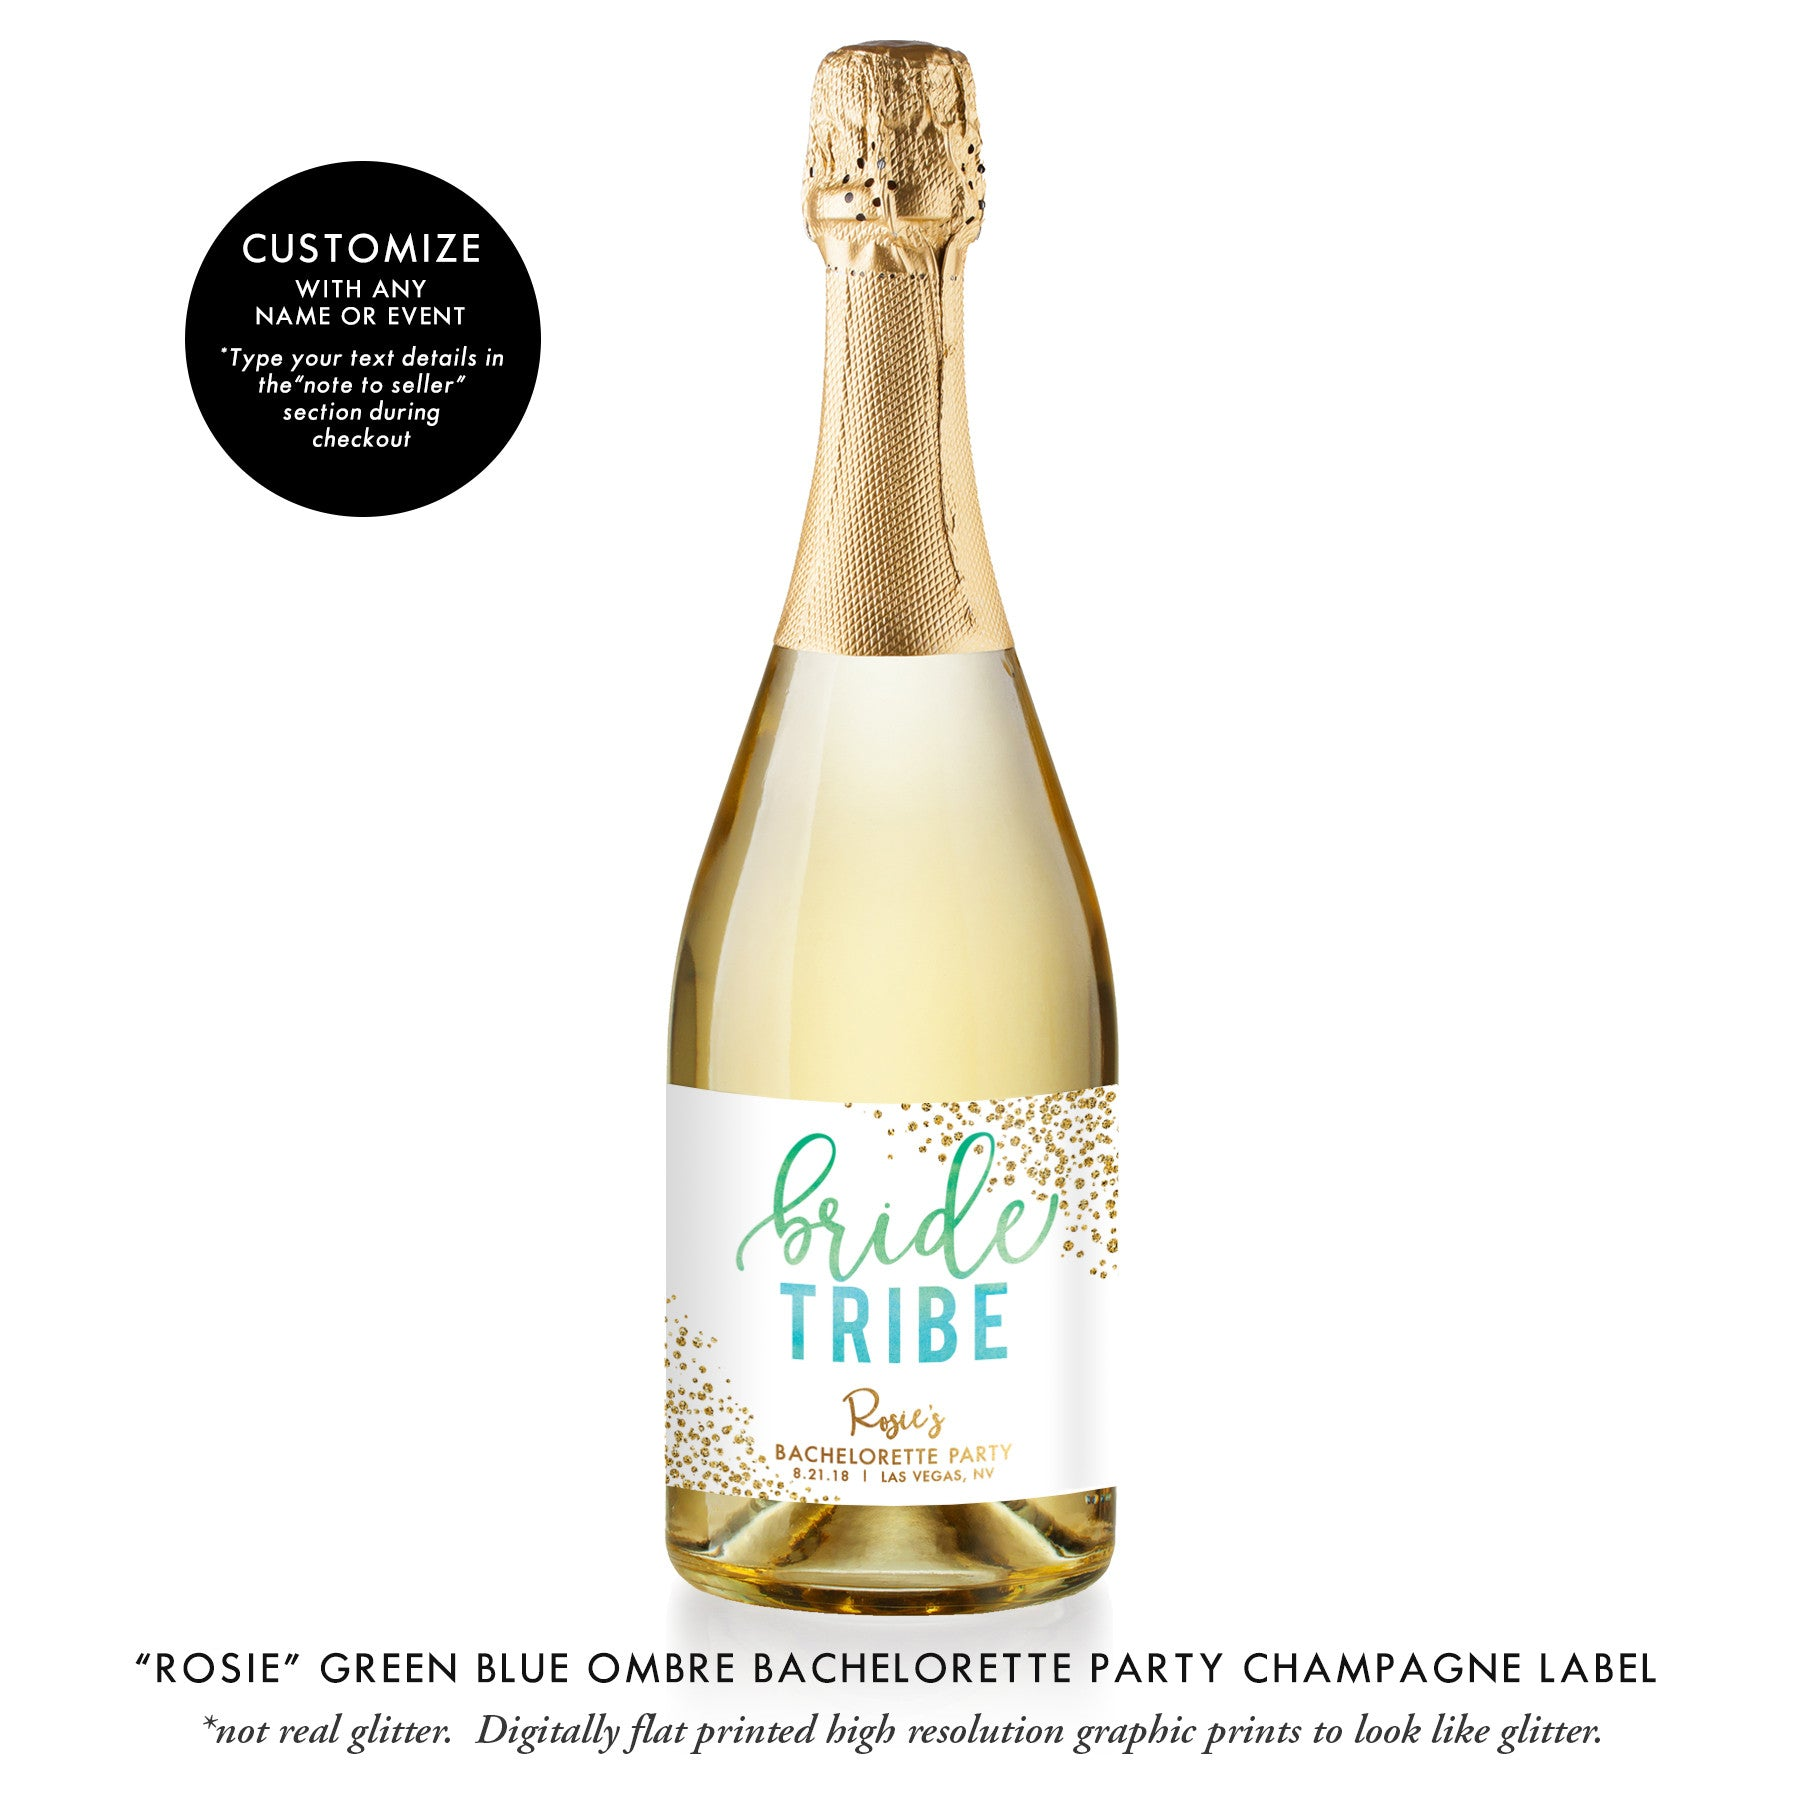 """Rosie"" Green Blue Ombre Bachelorette Party Champagne Labels"